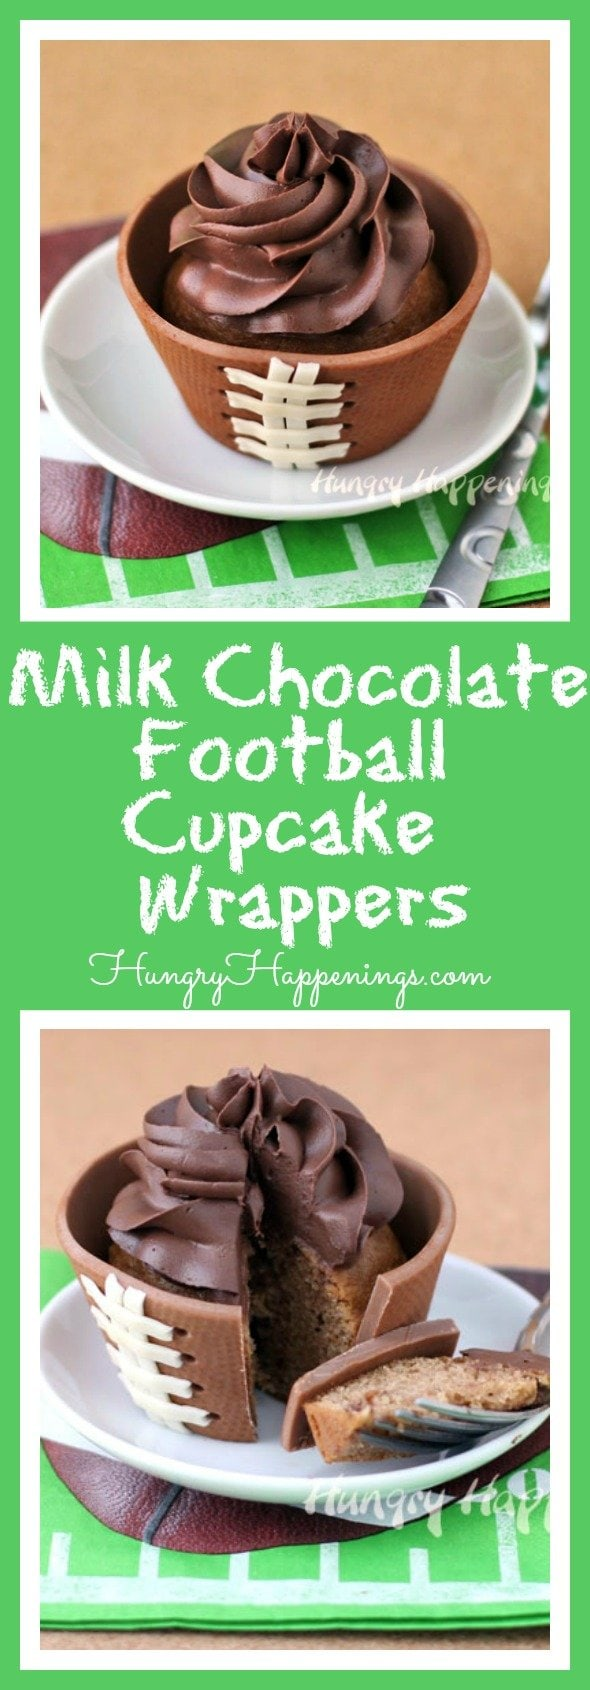 Hide your cupcakes in these adorable Milk Chocolate Football Cupcake Wrappers so when someone picks it up they will realize there is a scrumptious cupcake inside that is just waiting to be eaten!